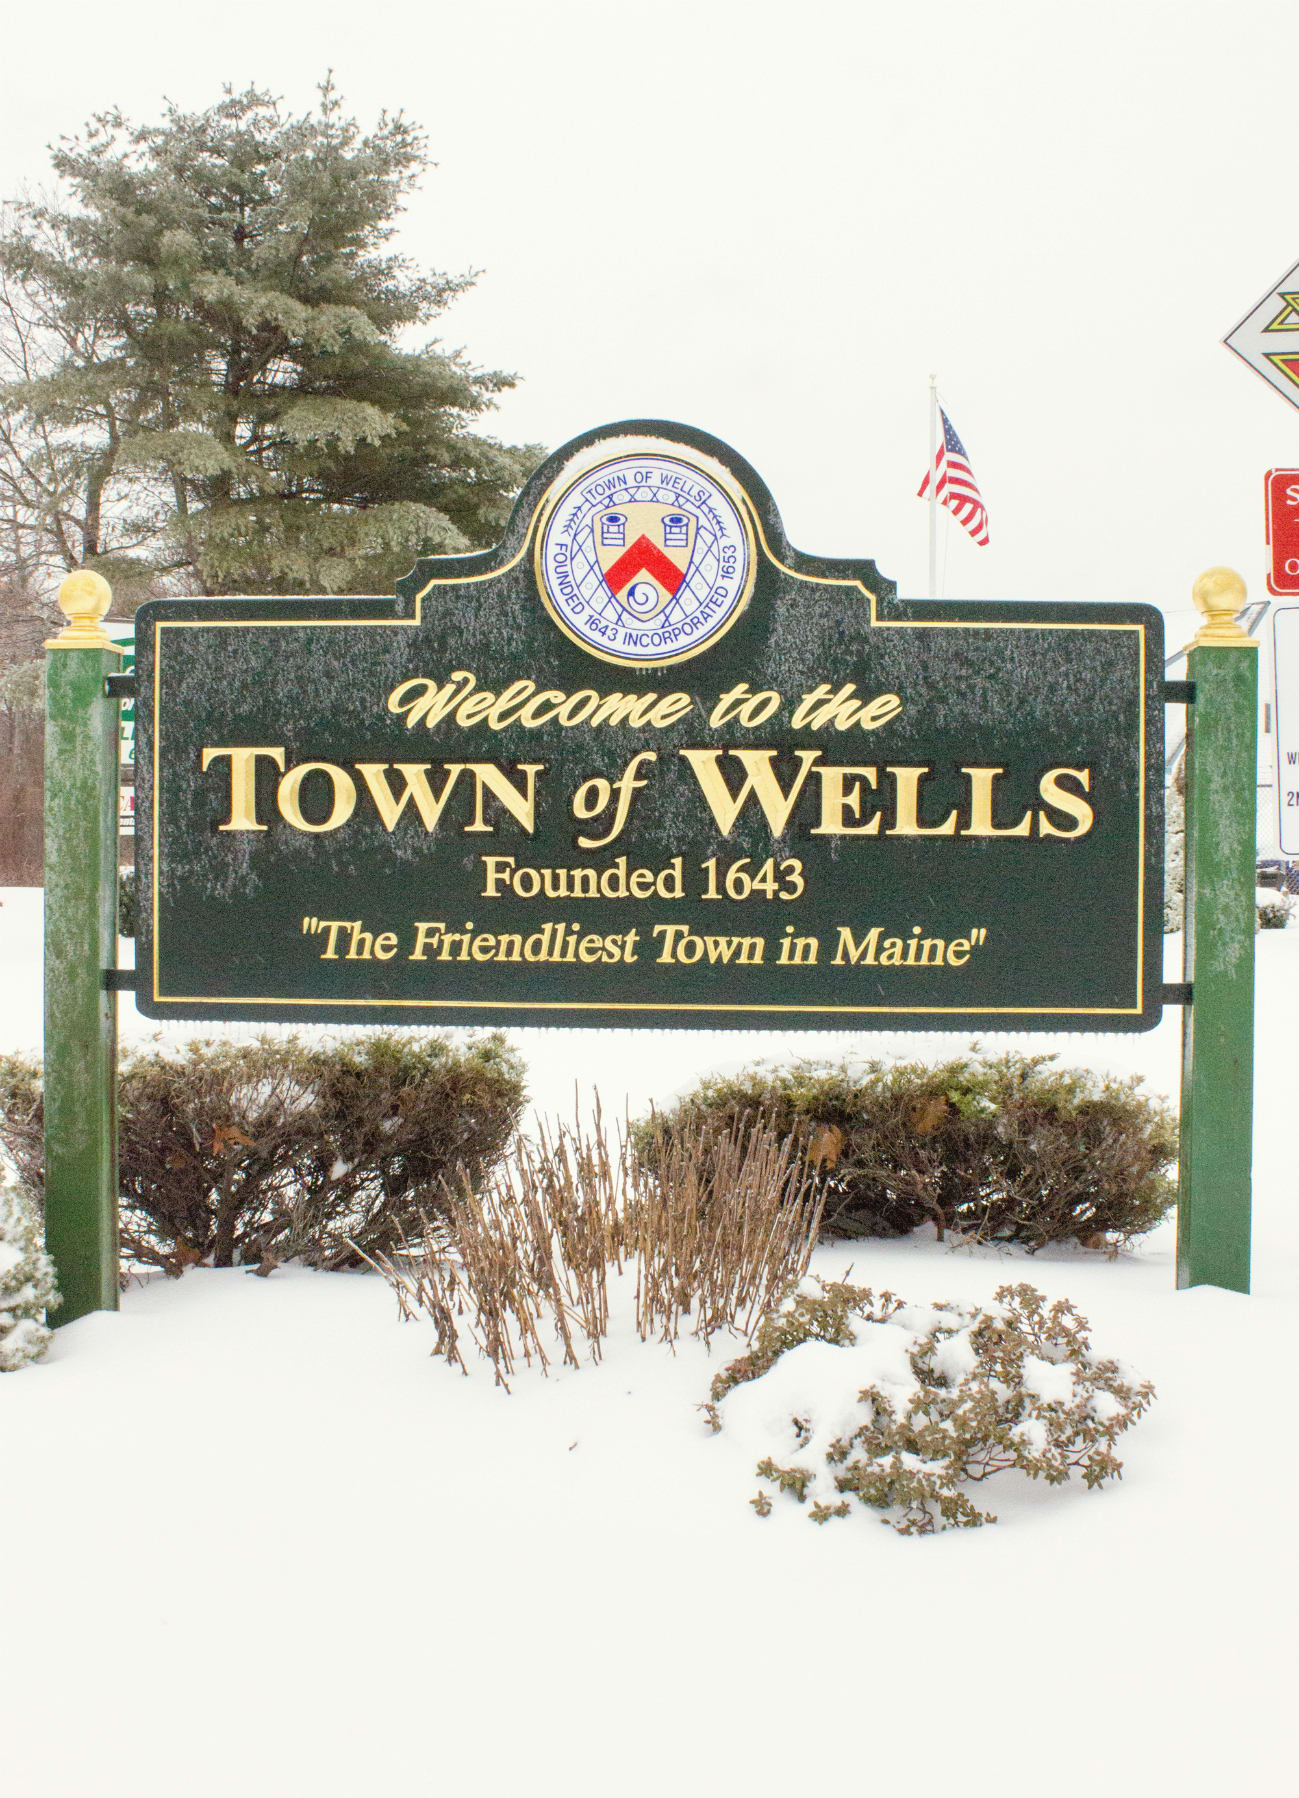 Welcome to the town of wells